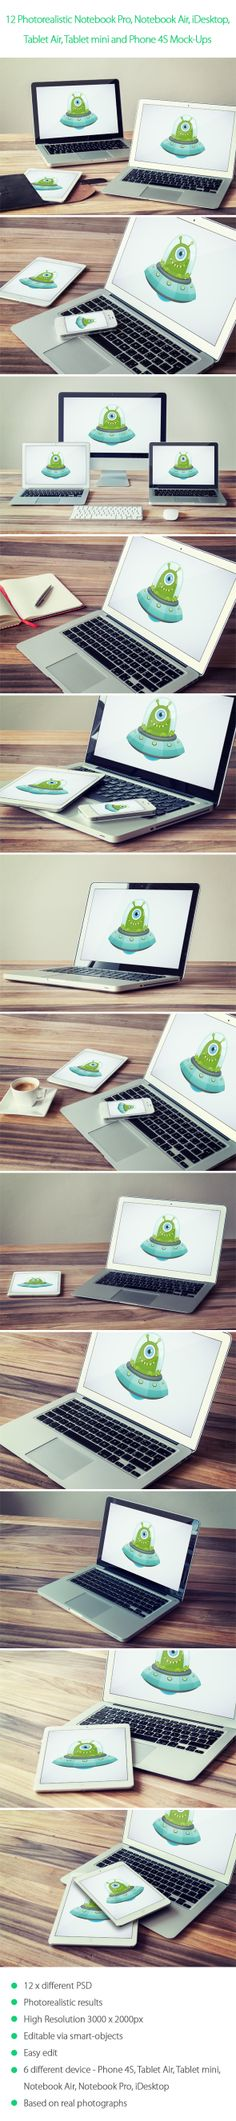 195 best Mockup images on Pinterest Mock up, Free stuff and - free letterhead samples